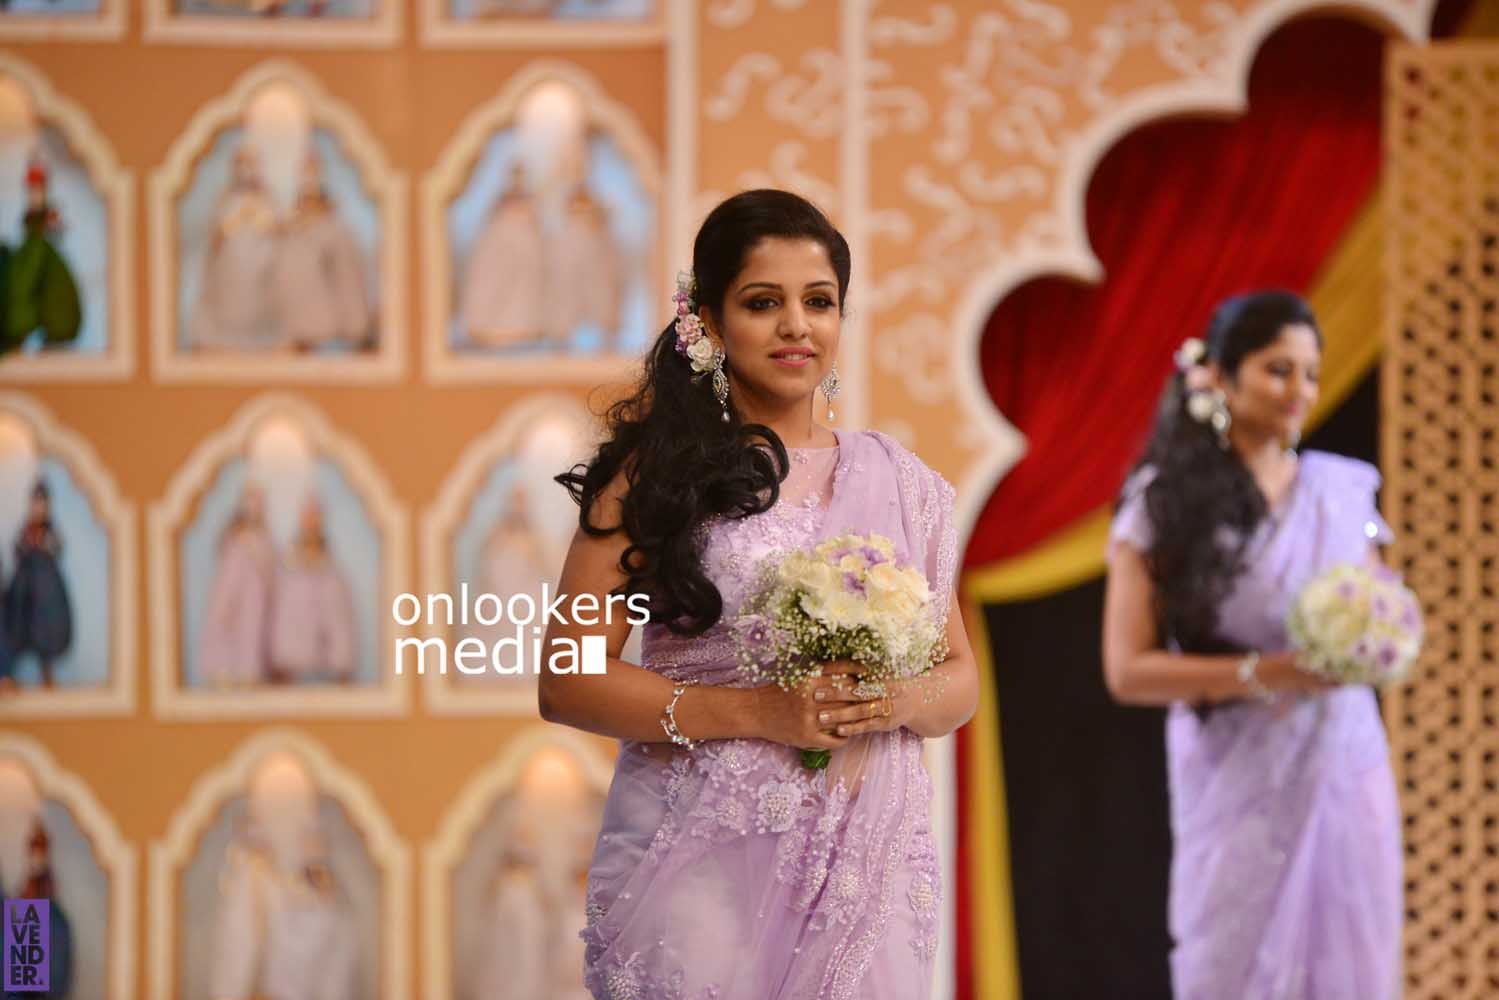 http://onlookersmedia.in/wp-content/uploads/2016/10/Beena-Kannan-Bridal-Show-2016-Stills-Photos-Seematti-94.jpg